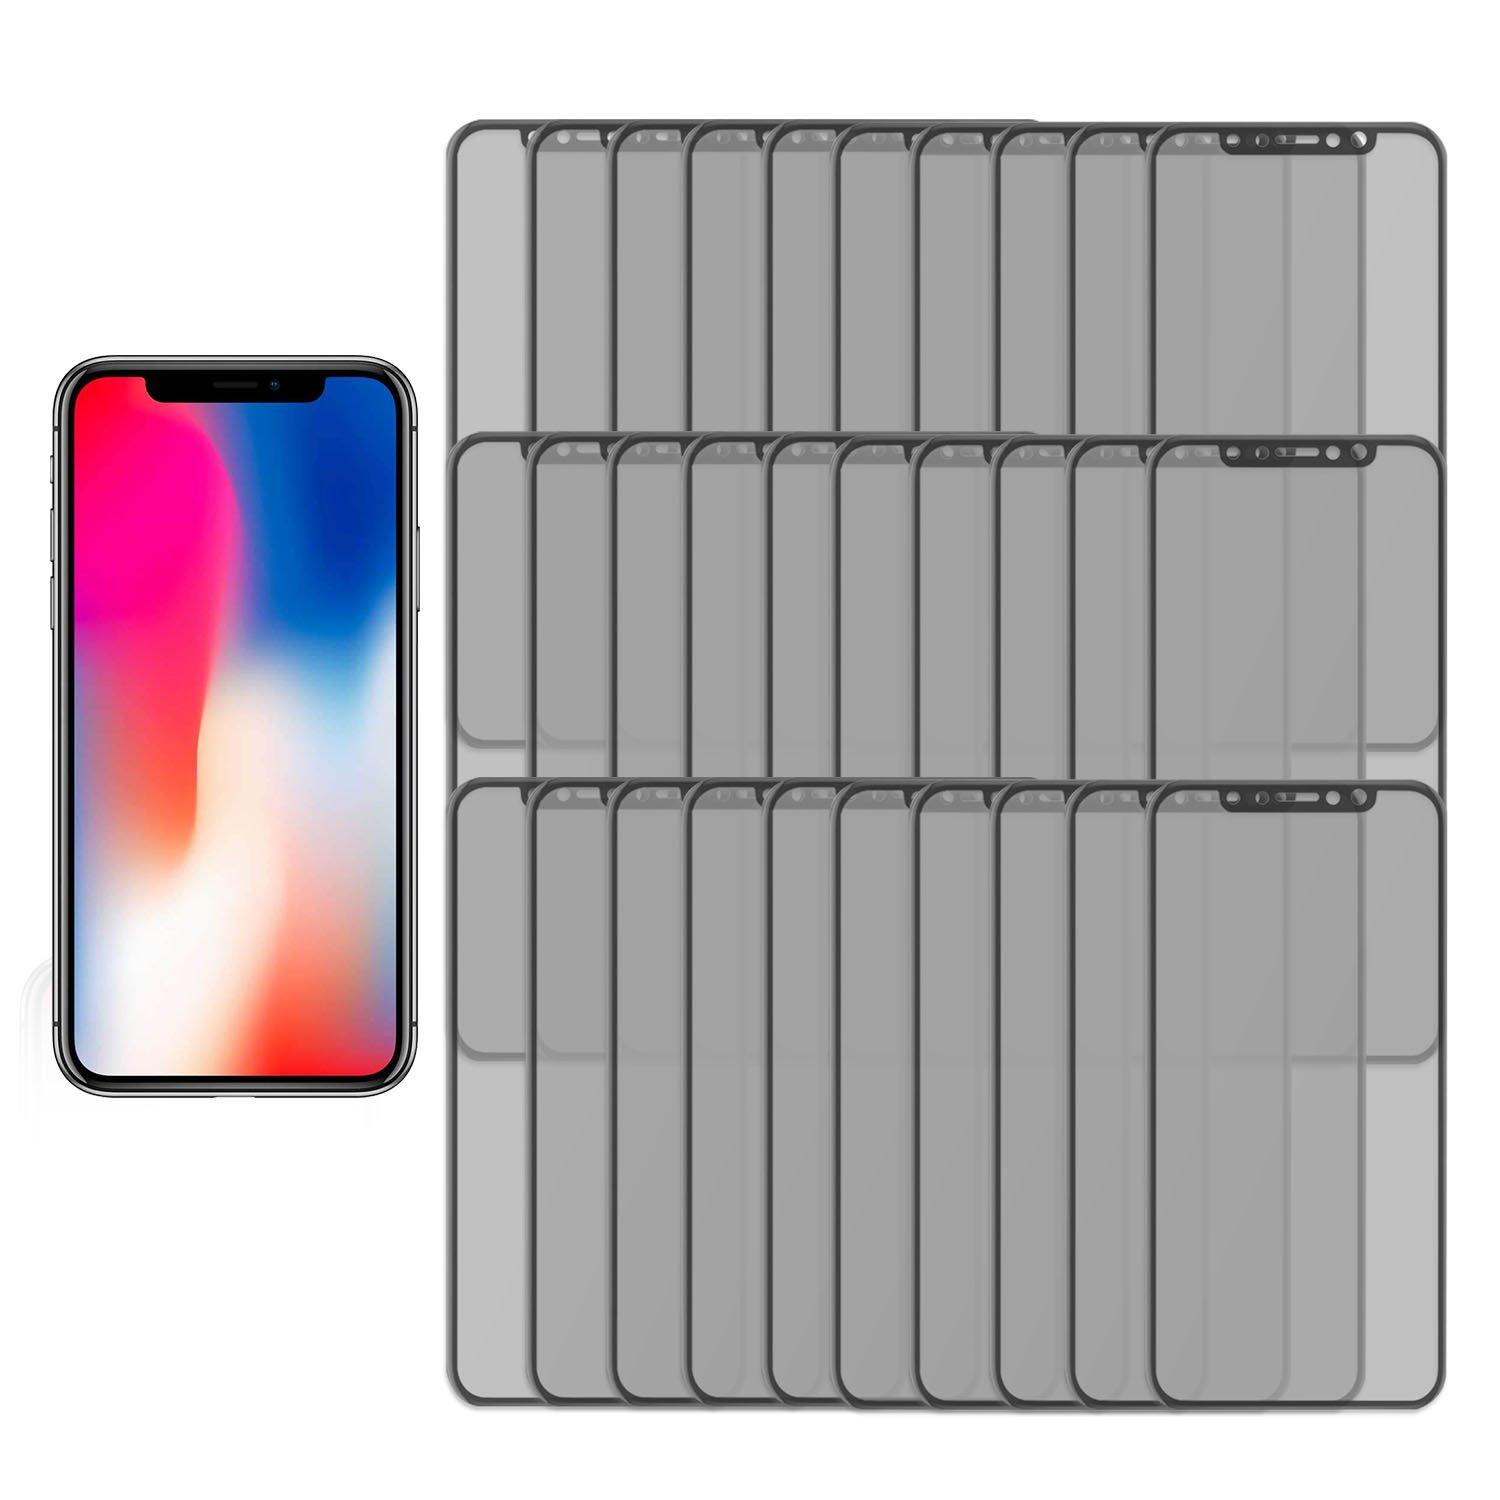 30PK - Private and Personal Protection View [3D Full Coverage] Screen Protector for Apple iPhone X, iPhone 10, Strong, Tough, and Reistant Anti Spy 3D Full Cover Tempered Glass by TortugaArmor